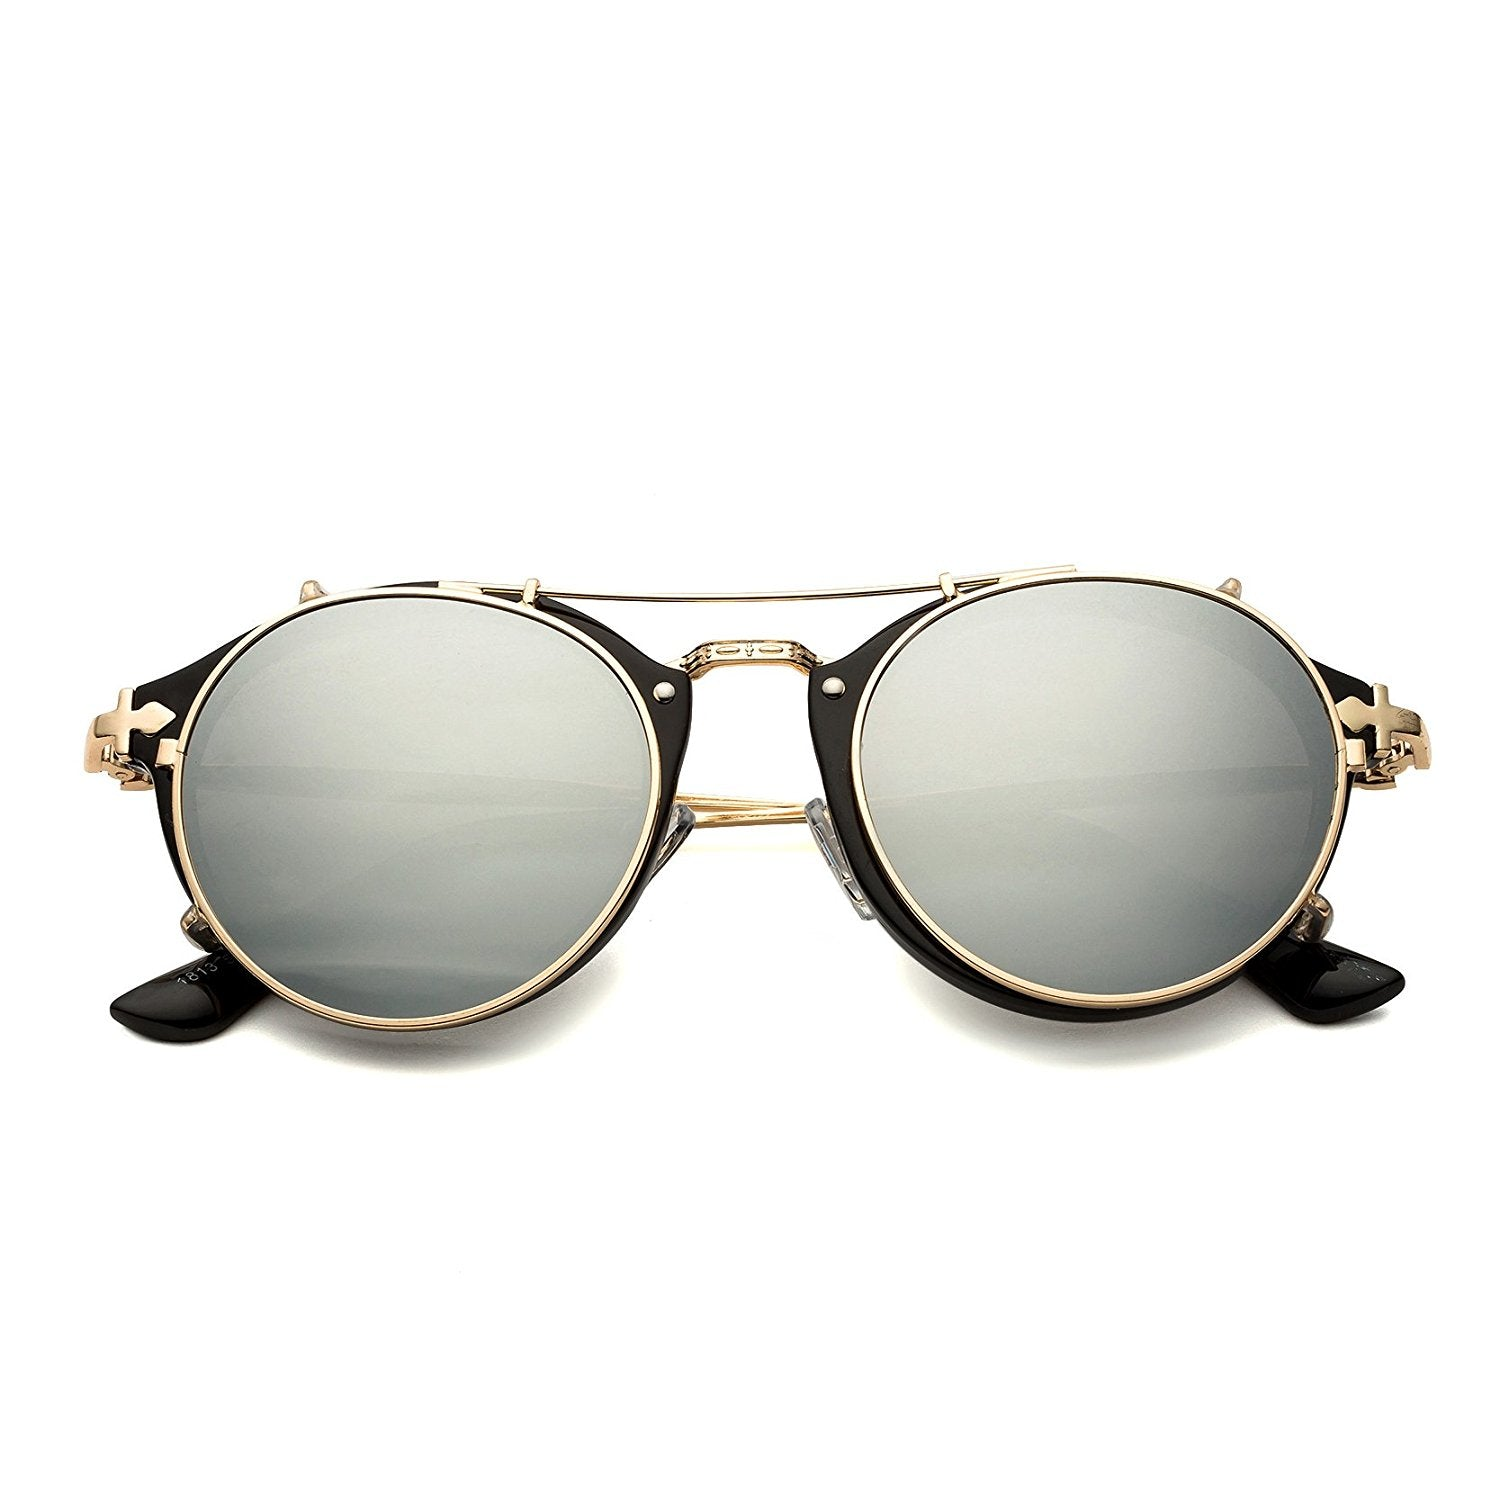 b049387c153 ... Dollger Clip On Sunglasses Steampunk Style and Round Mirrored Lens ...